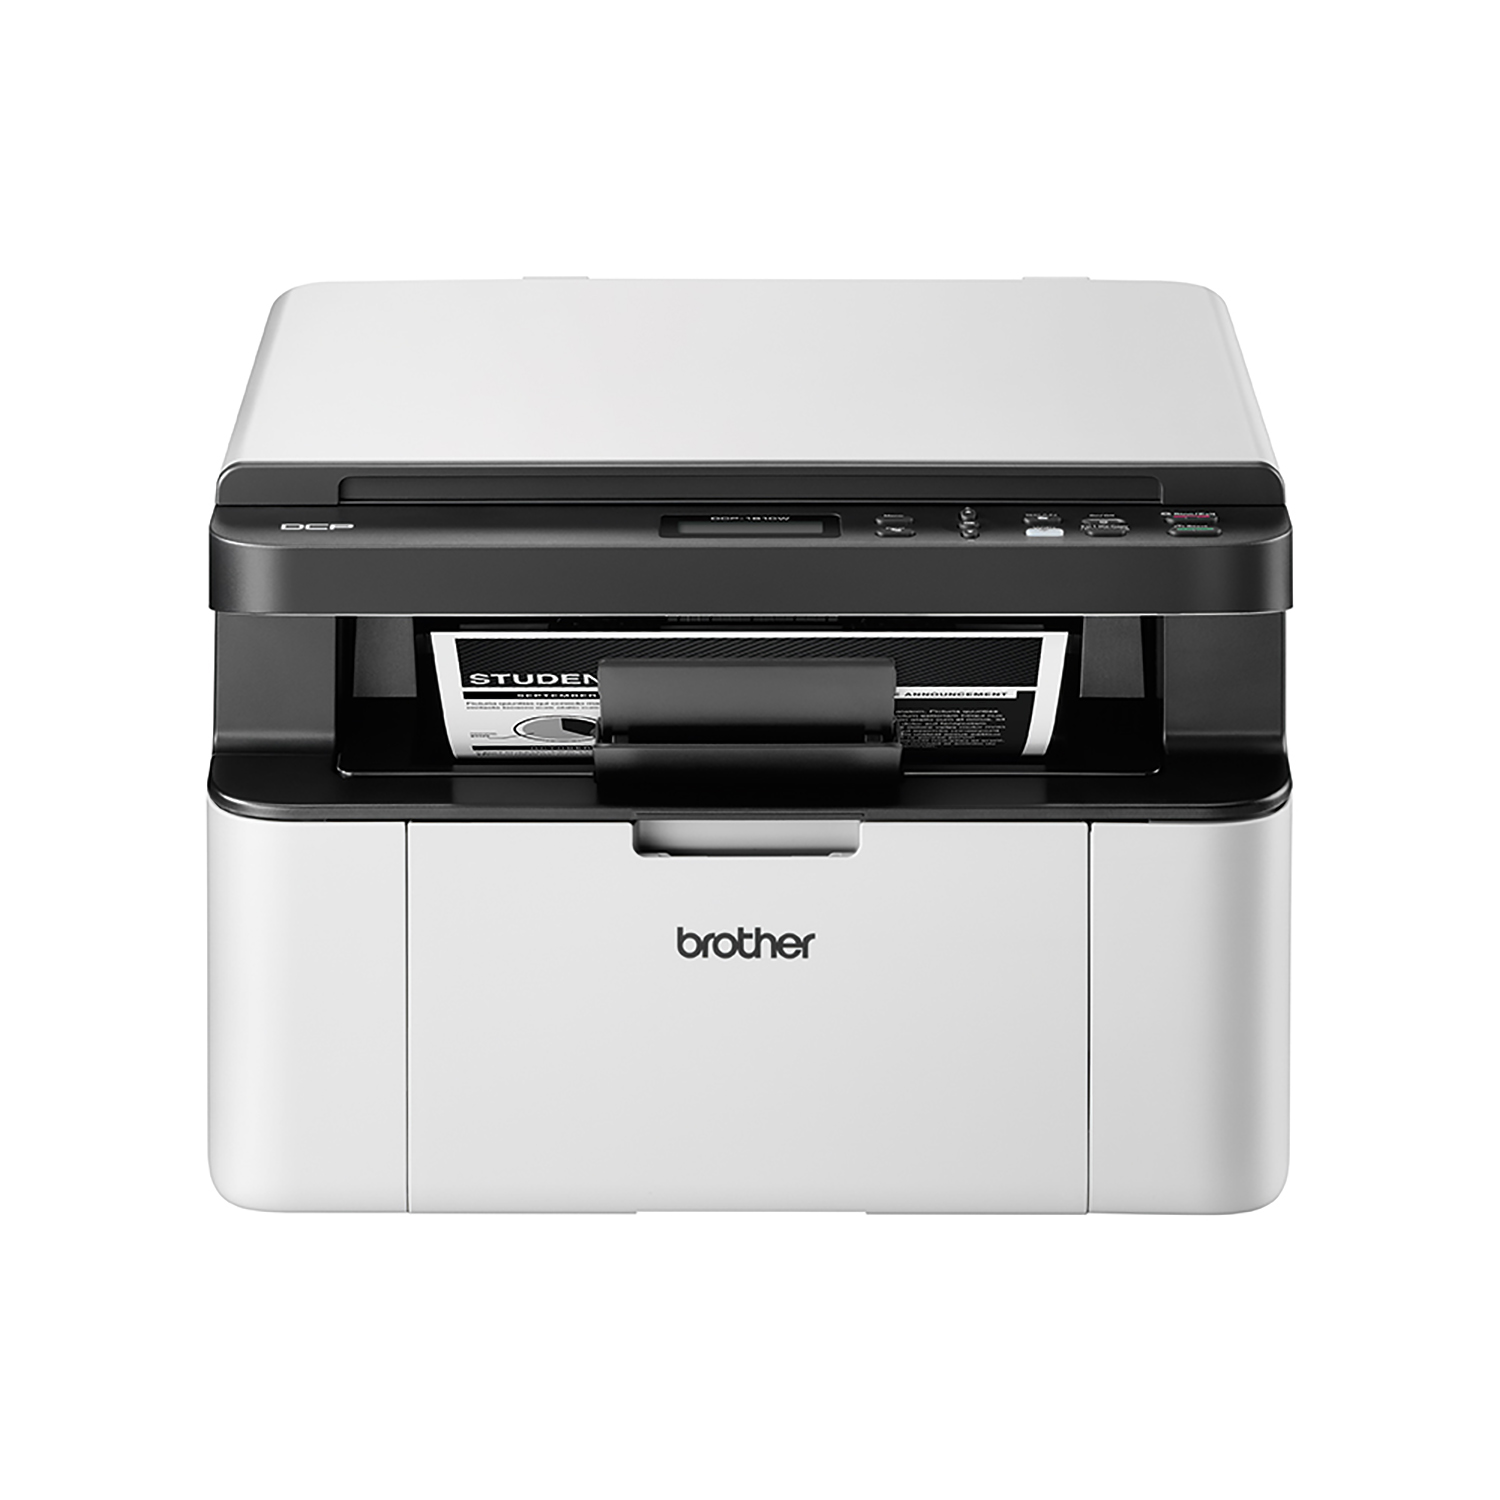 Laser printers Brother DCP1610W All-in-Box Laser Printer Ref DCP1610WVBZU1